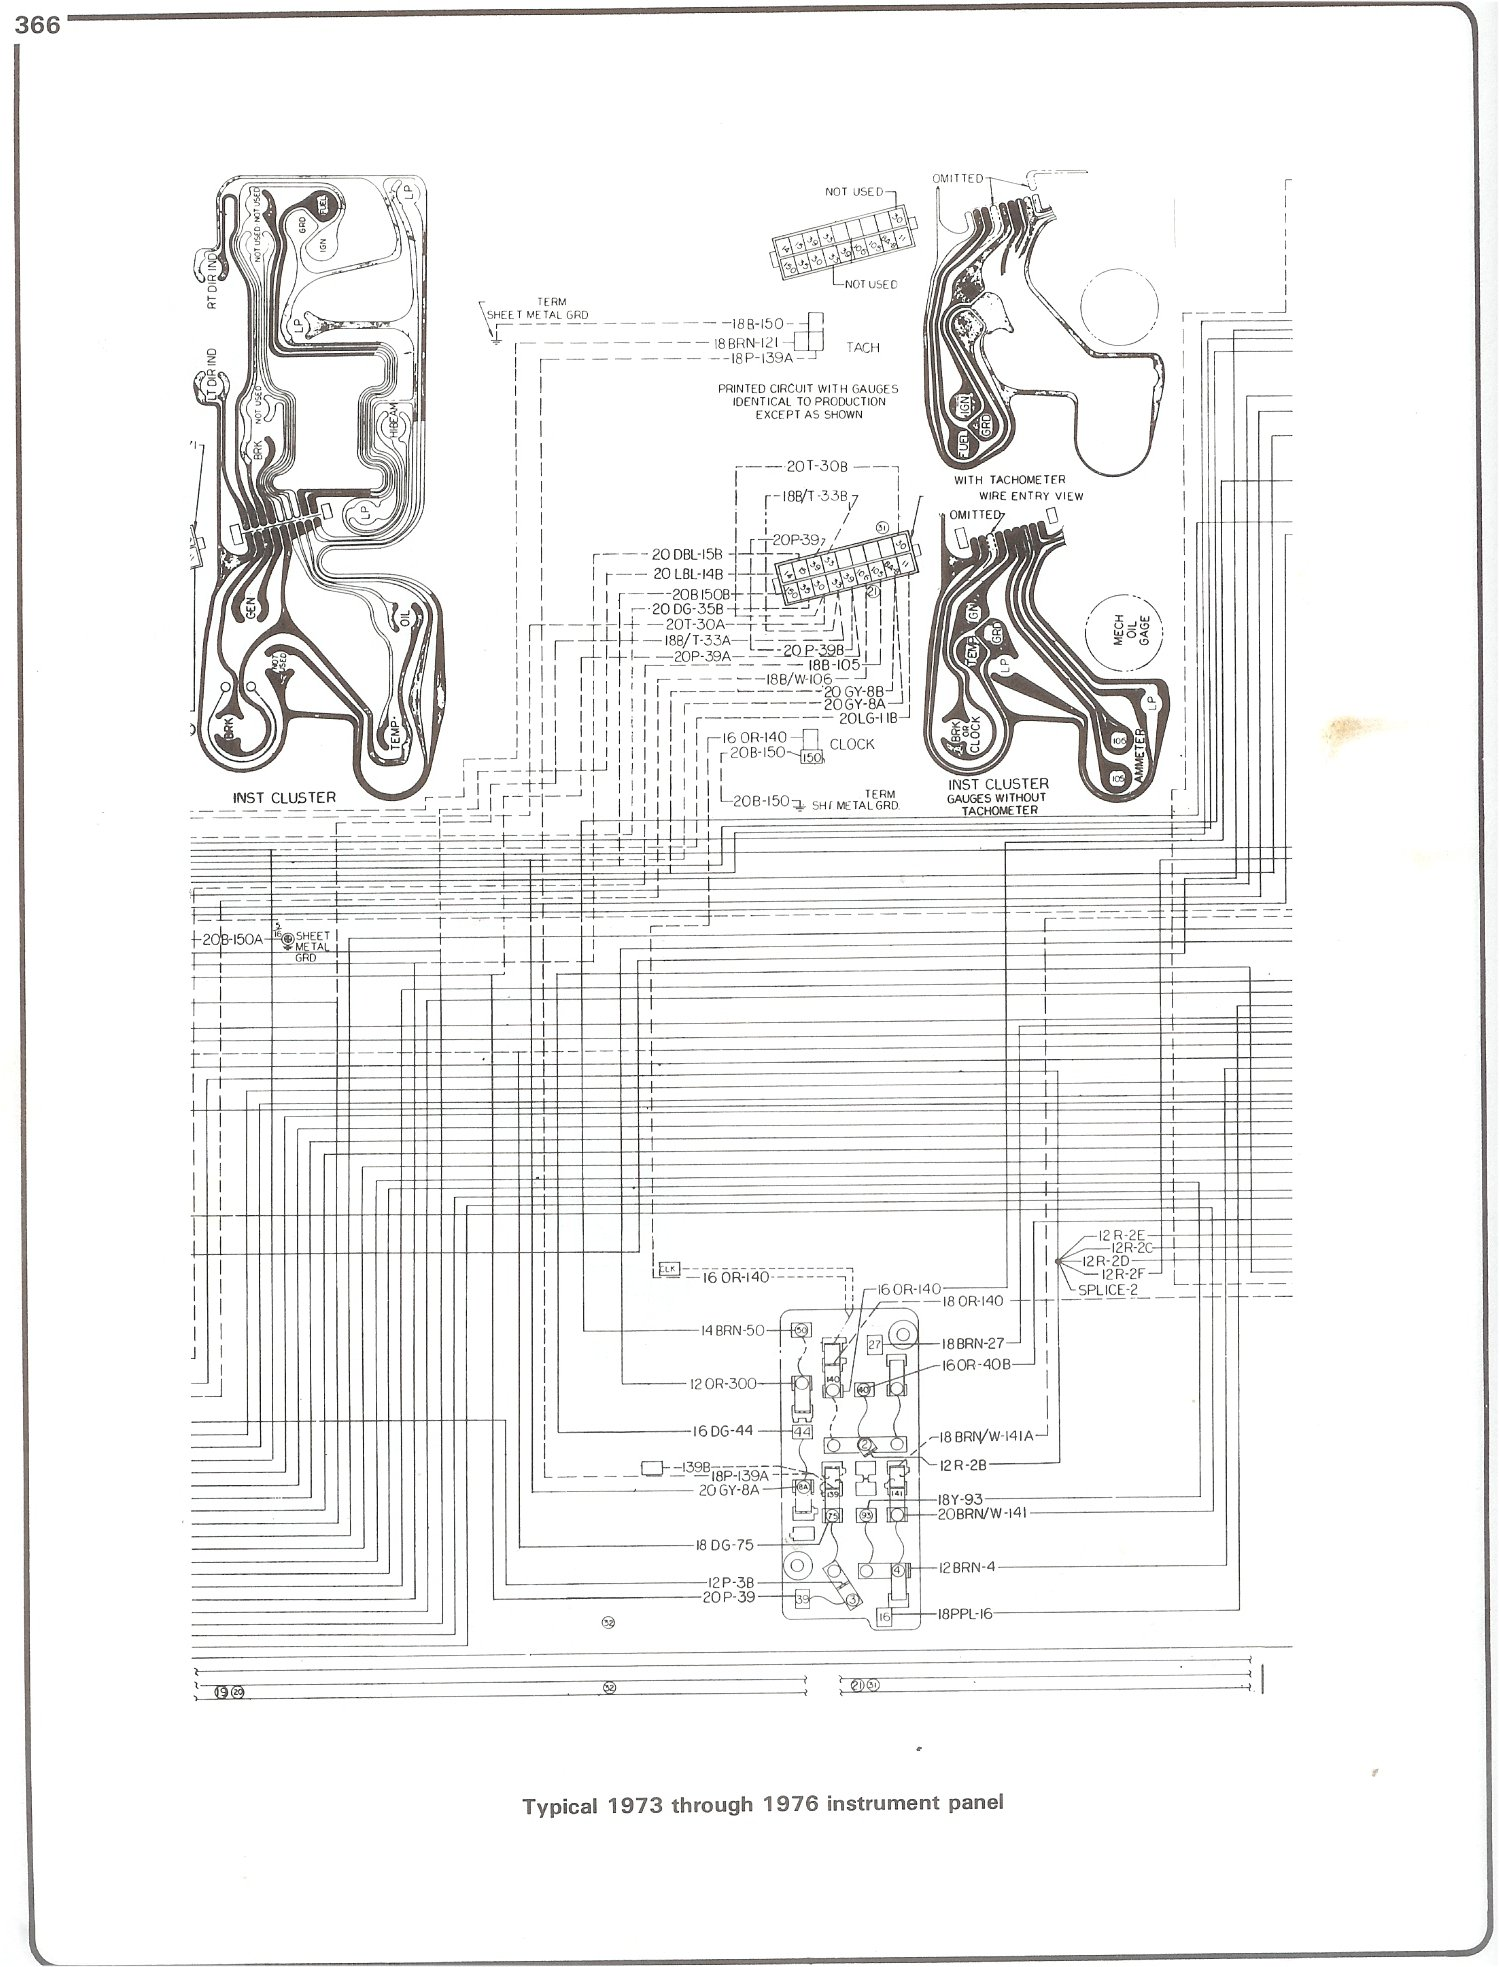 73 76_instrument complete 73 87 wiring diagrams 2004 silverado instrument cluster wiring diagram at honlapkeszites.co